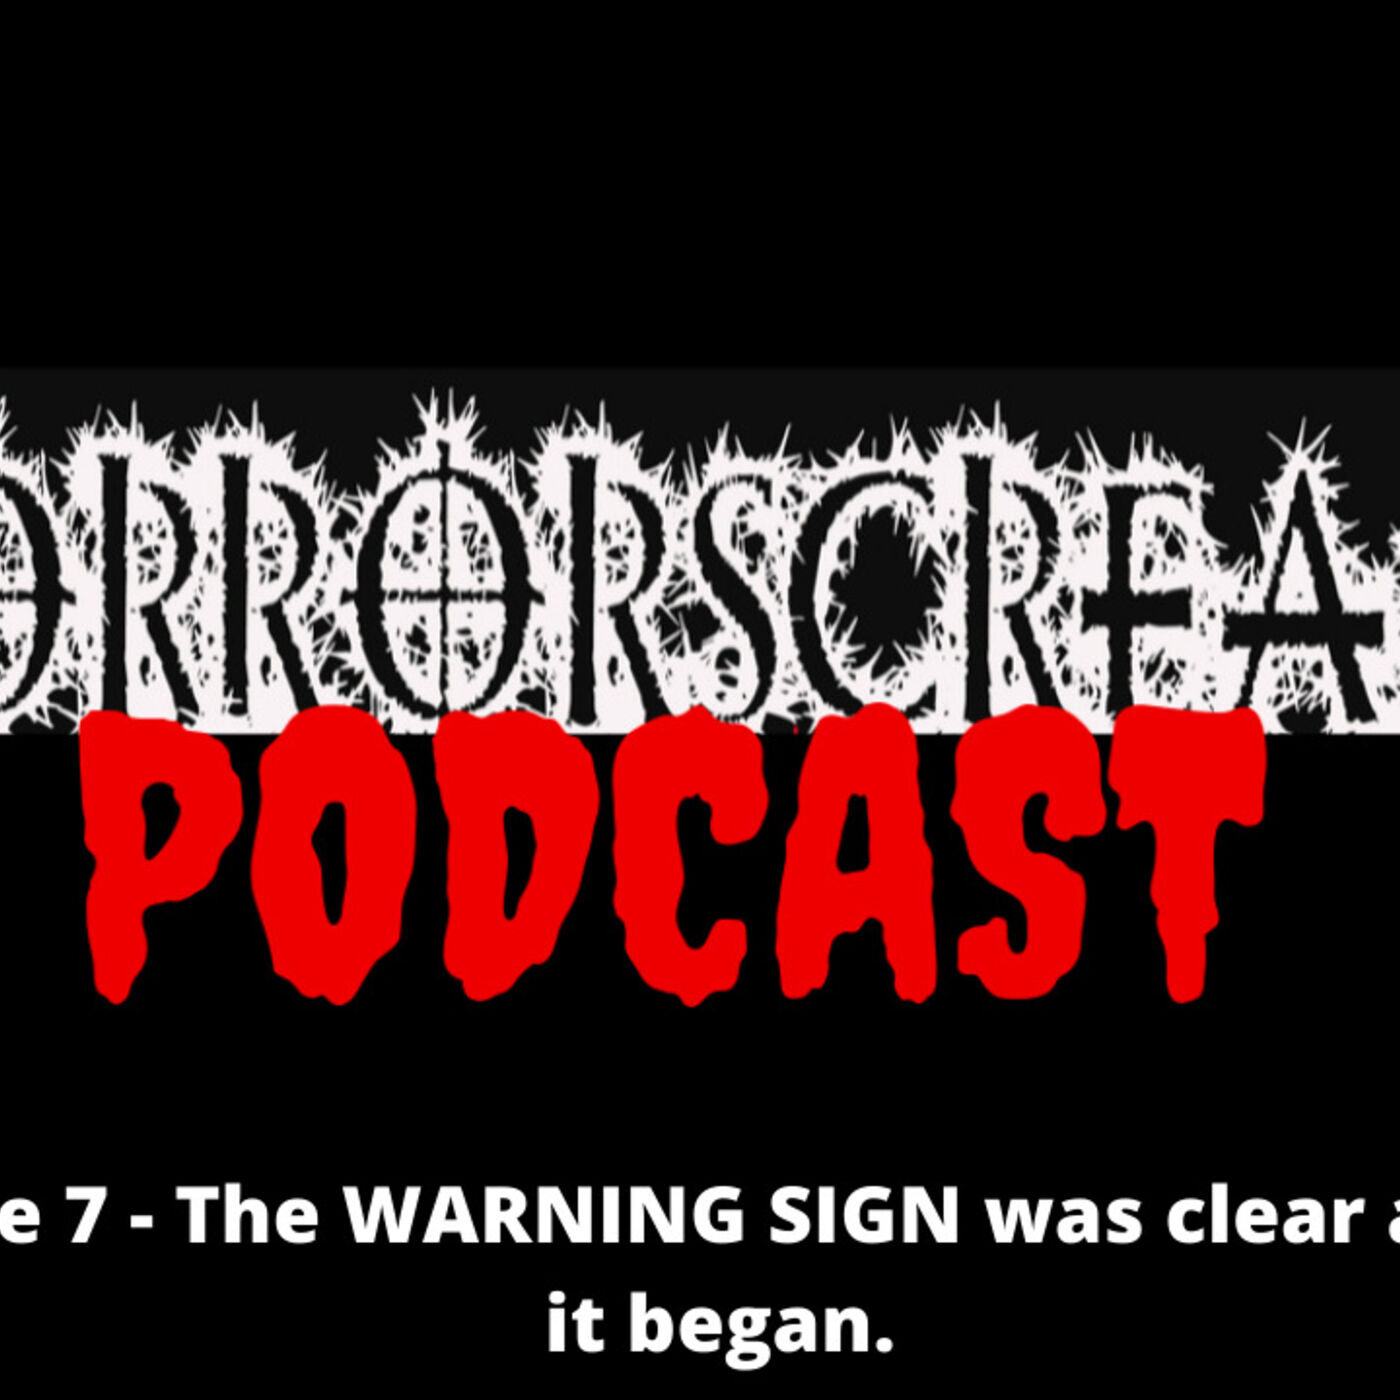 HORRORSCREAMS PODCAST: Episode 7 - The WARNING SIGN was clear and then it began.